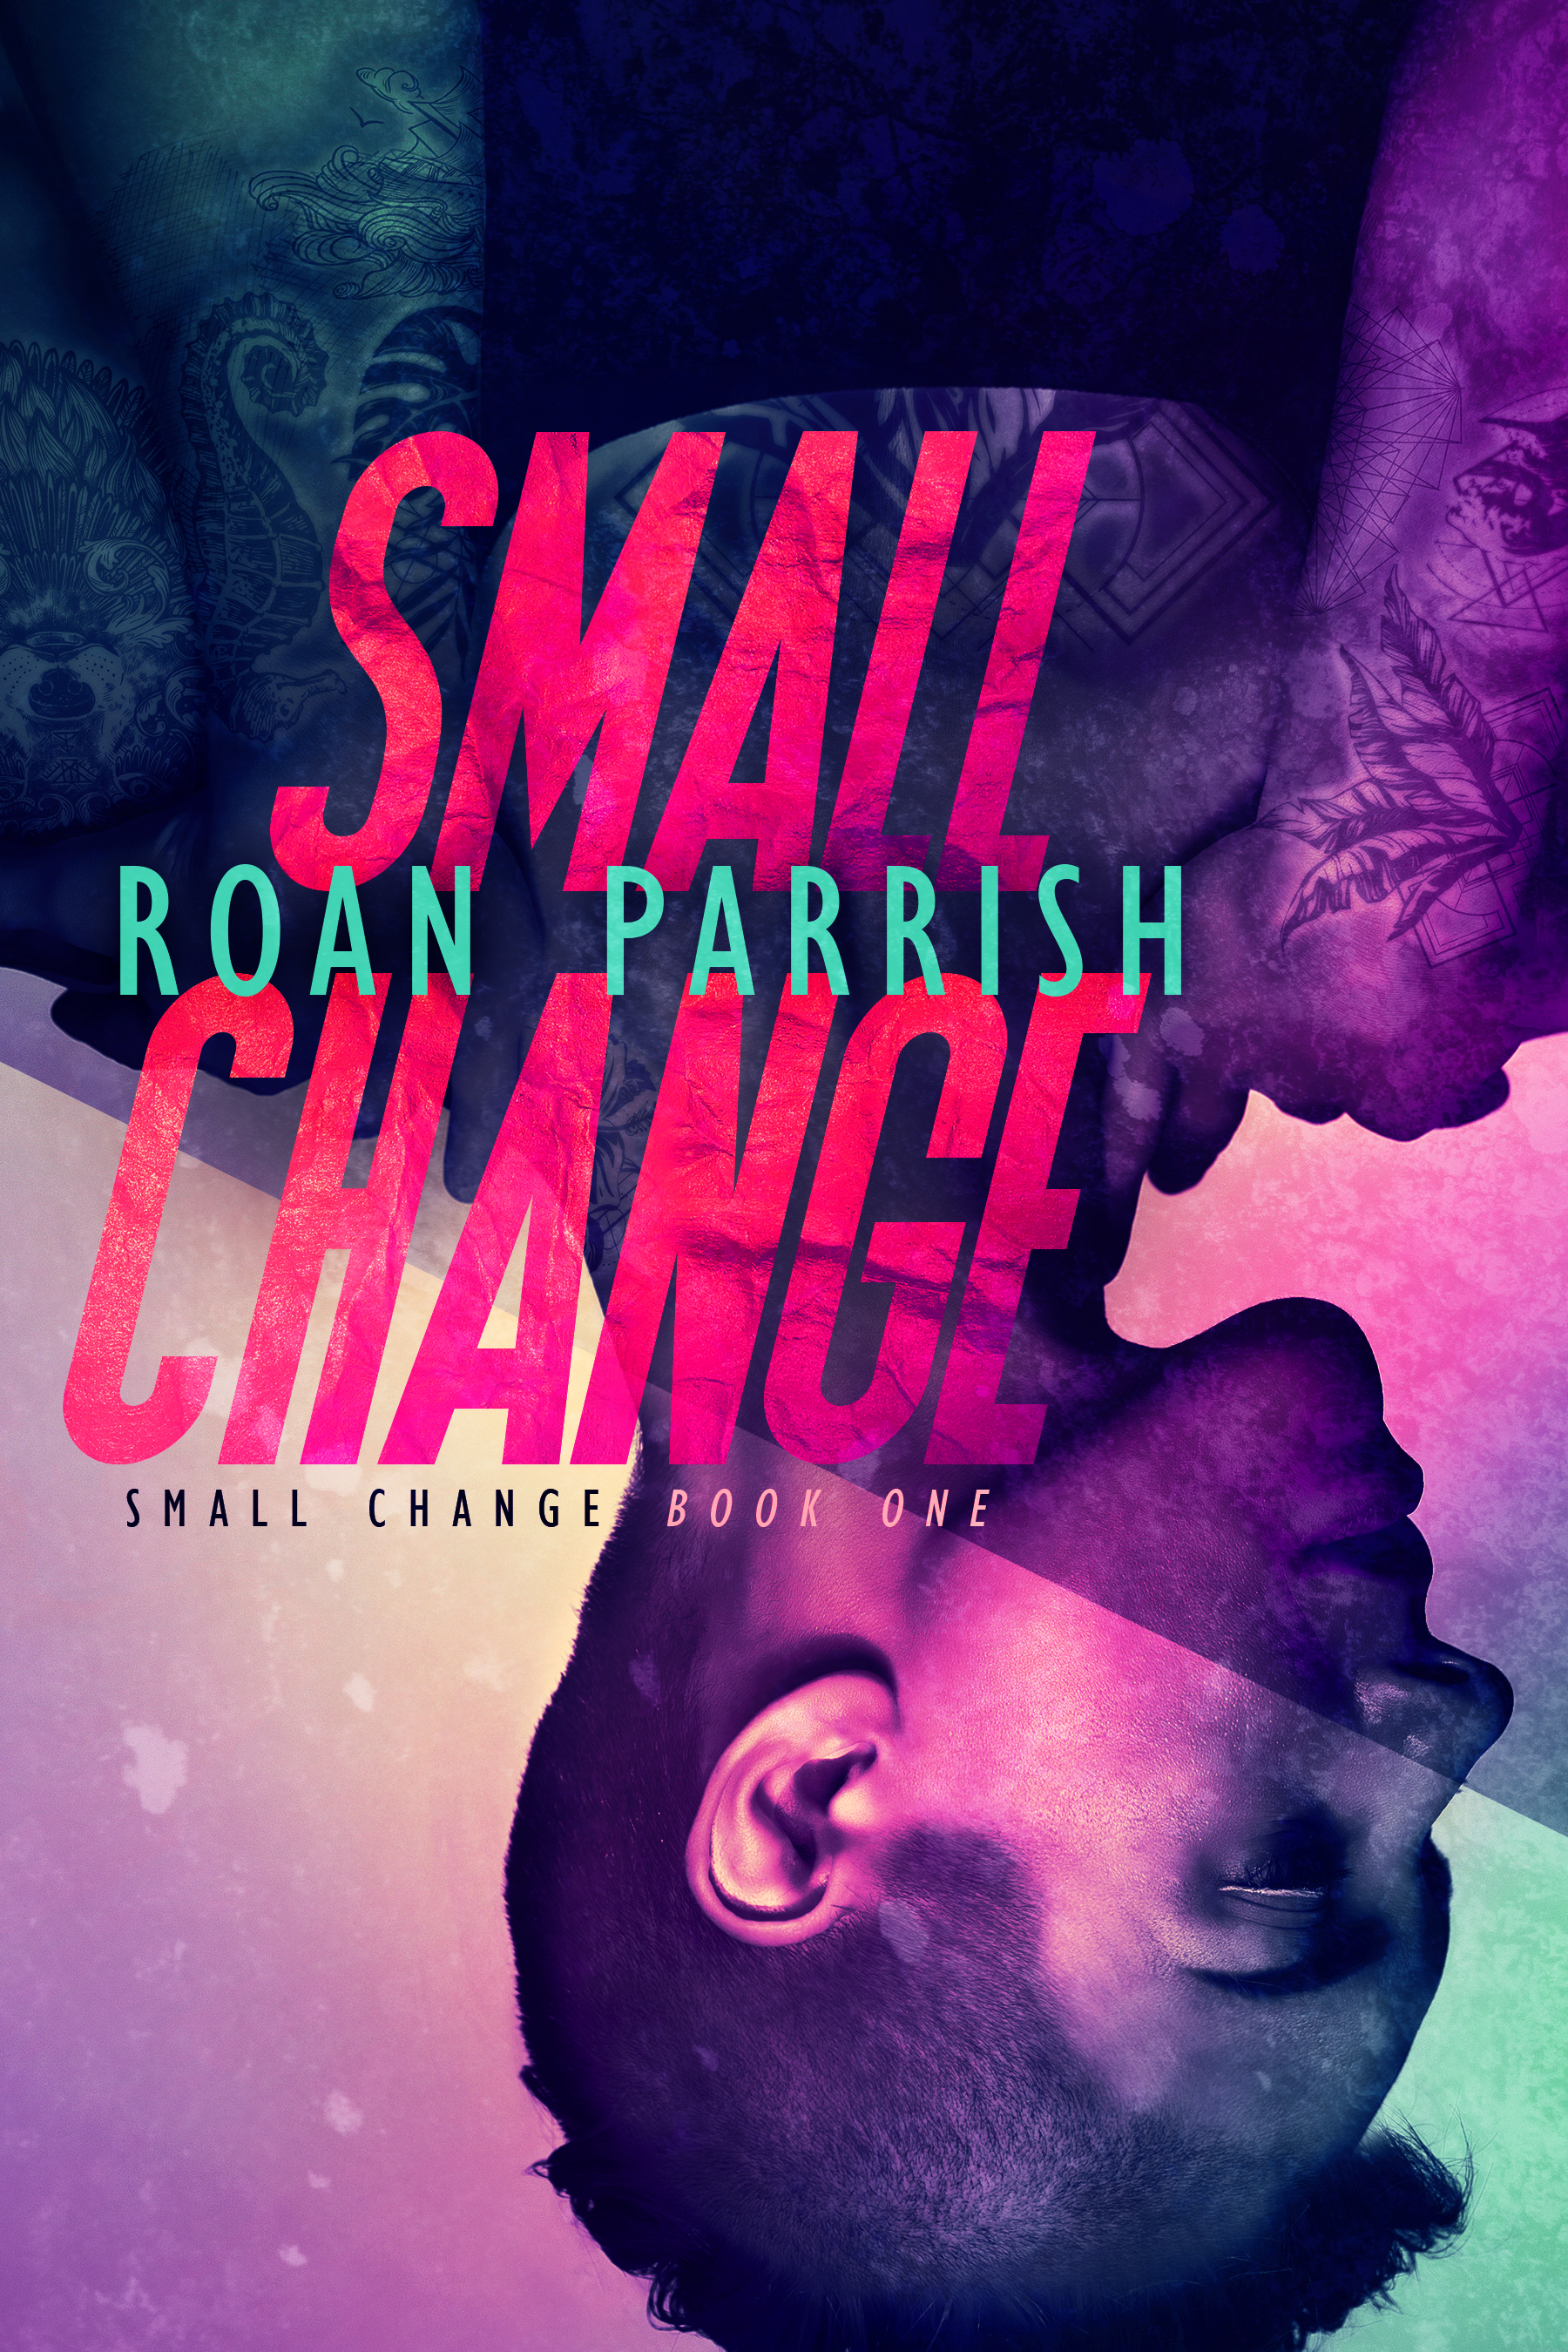 Interview: Small Change by Roan Parrish